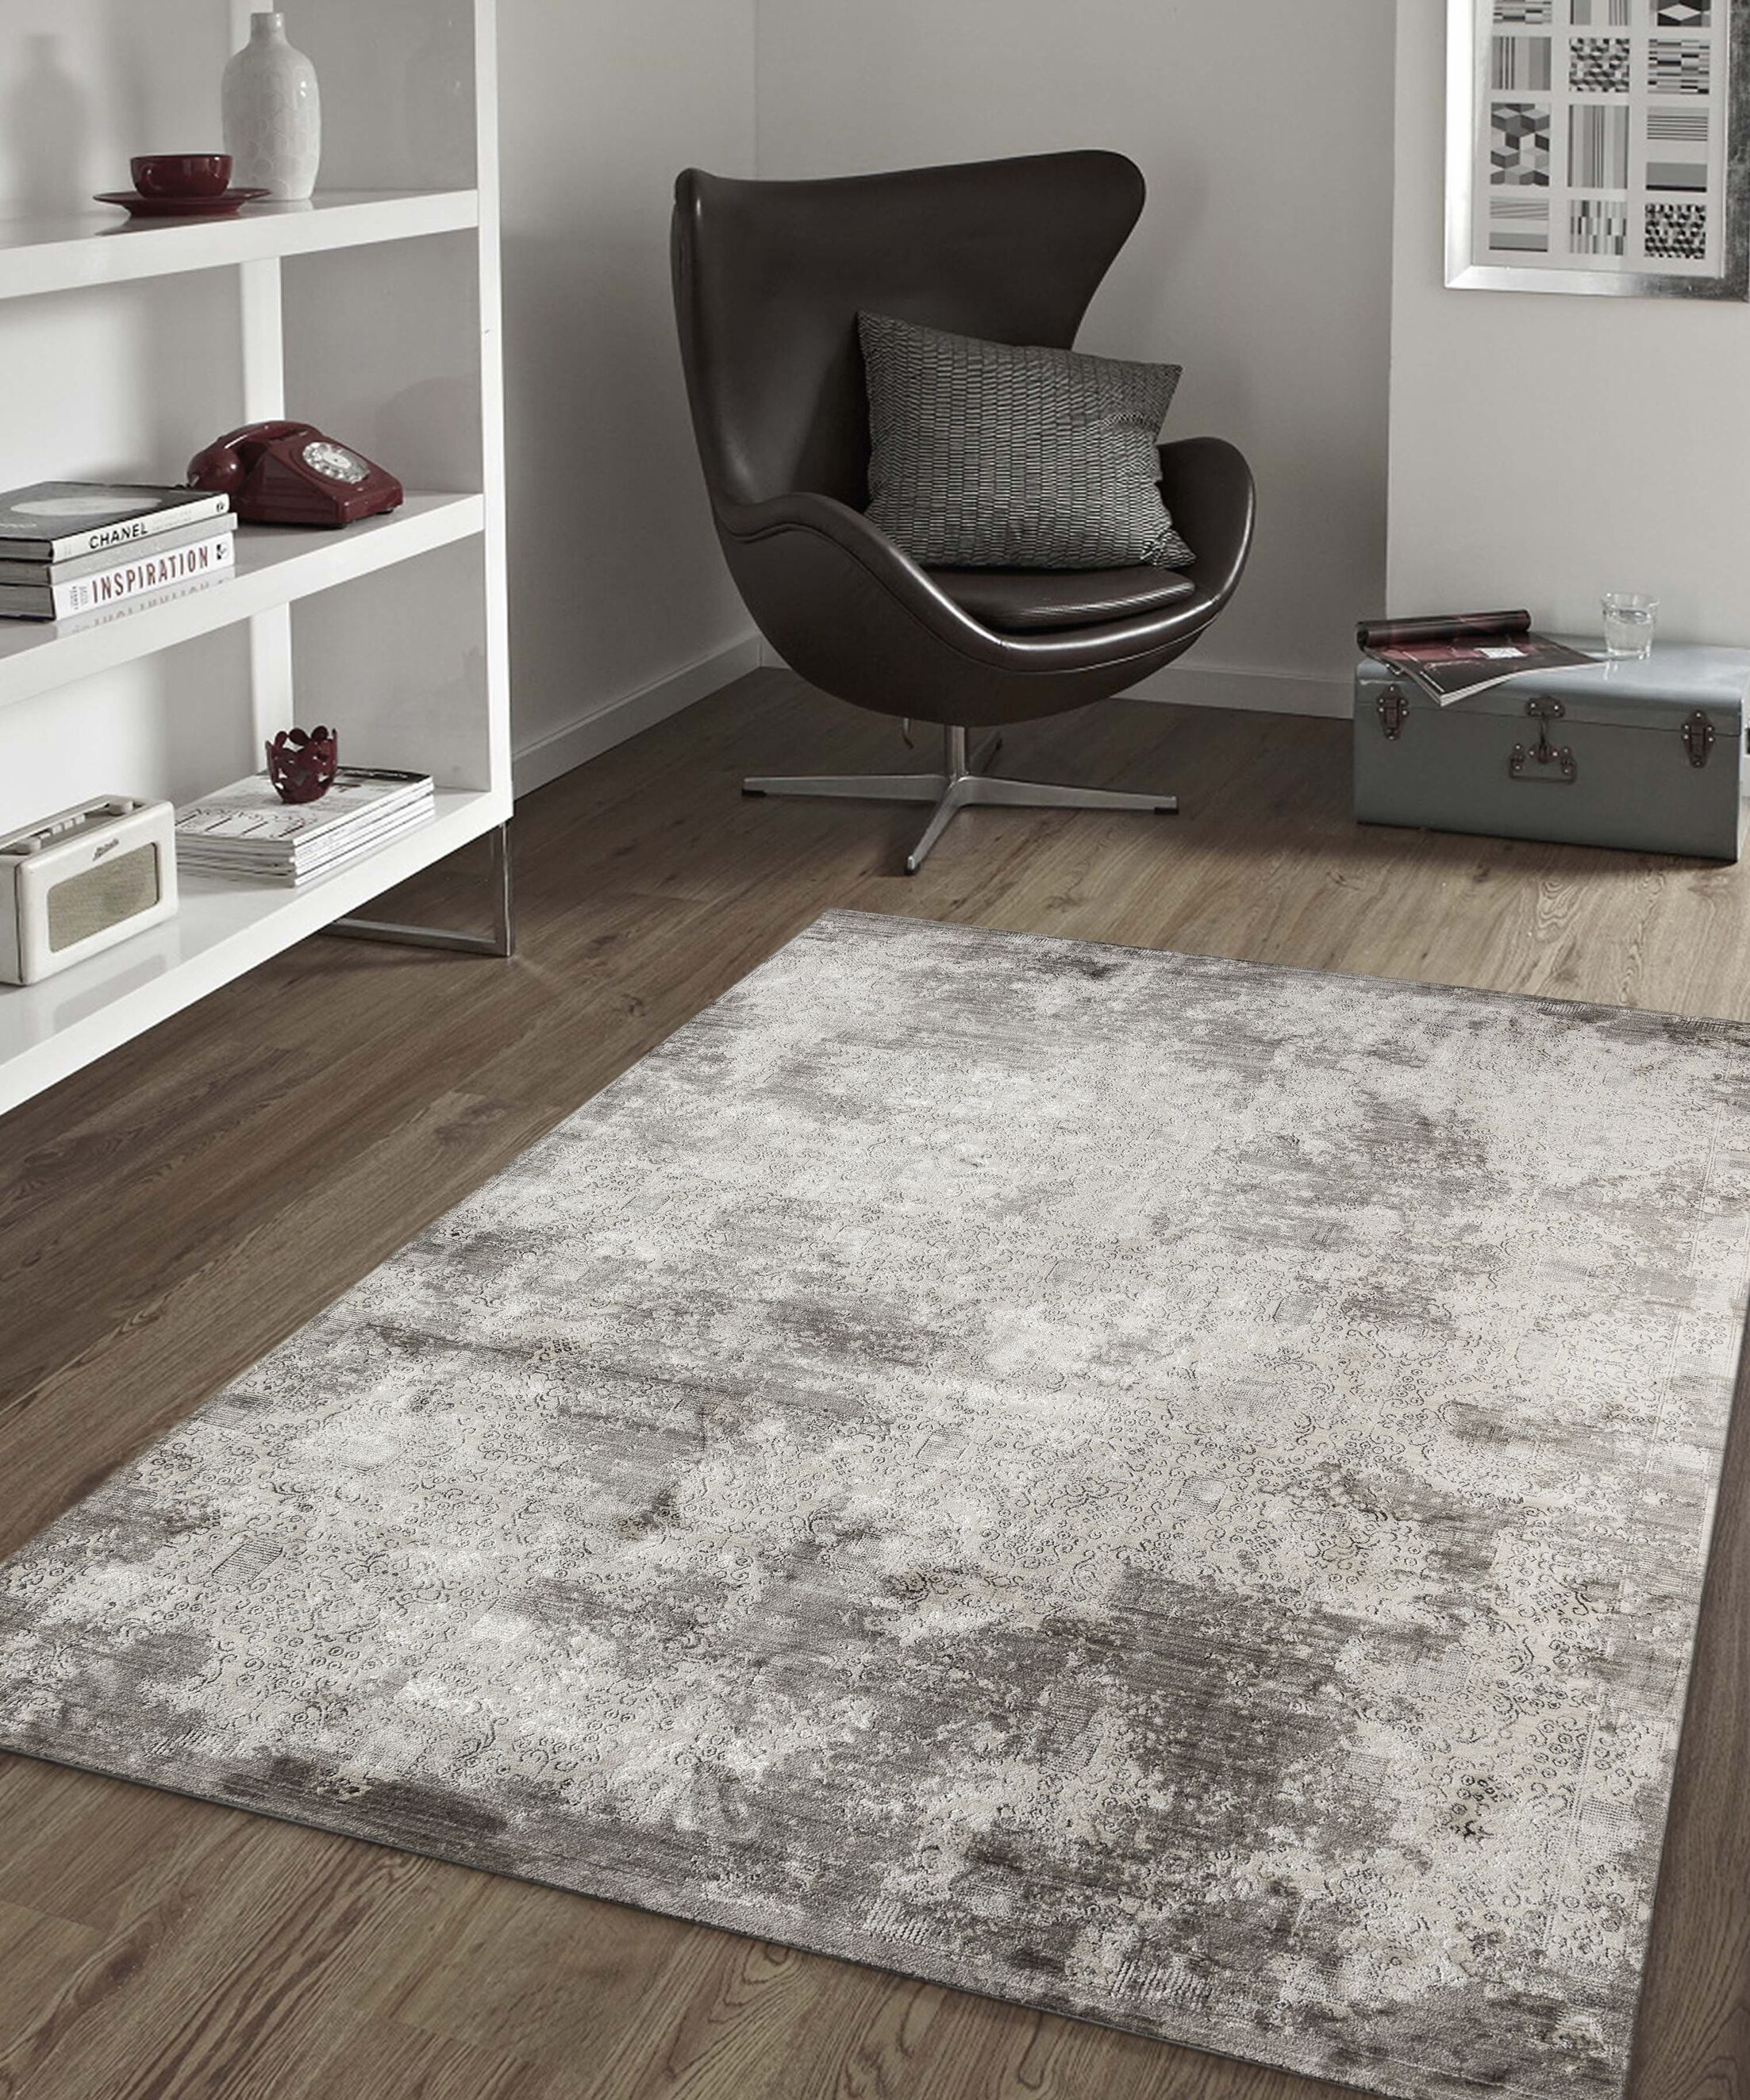 Cadence Transitional Gray Area Rug Rug Size: Rectangle 5' 3